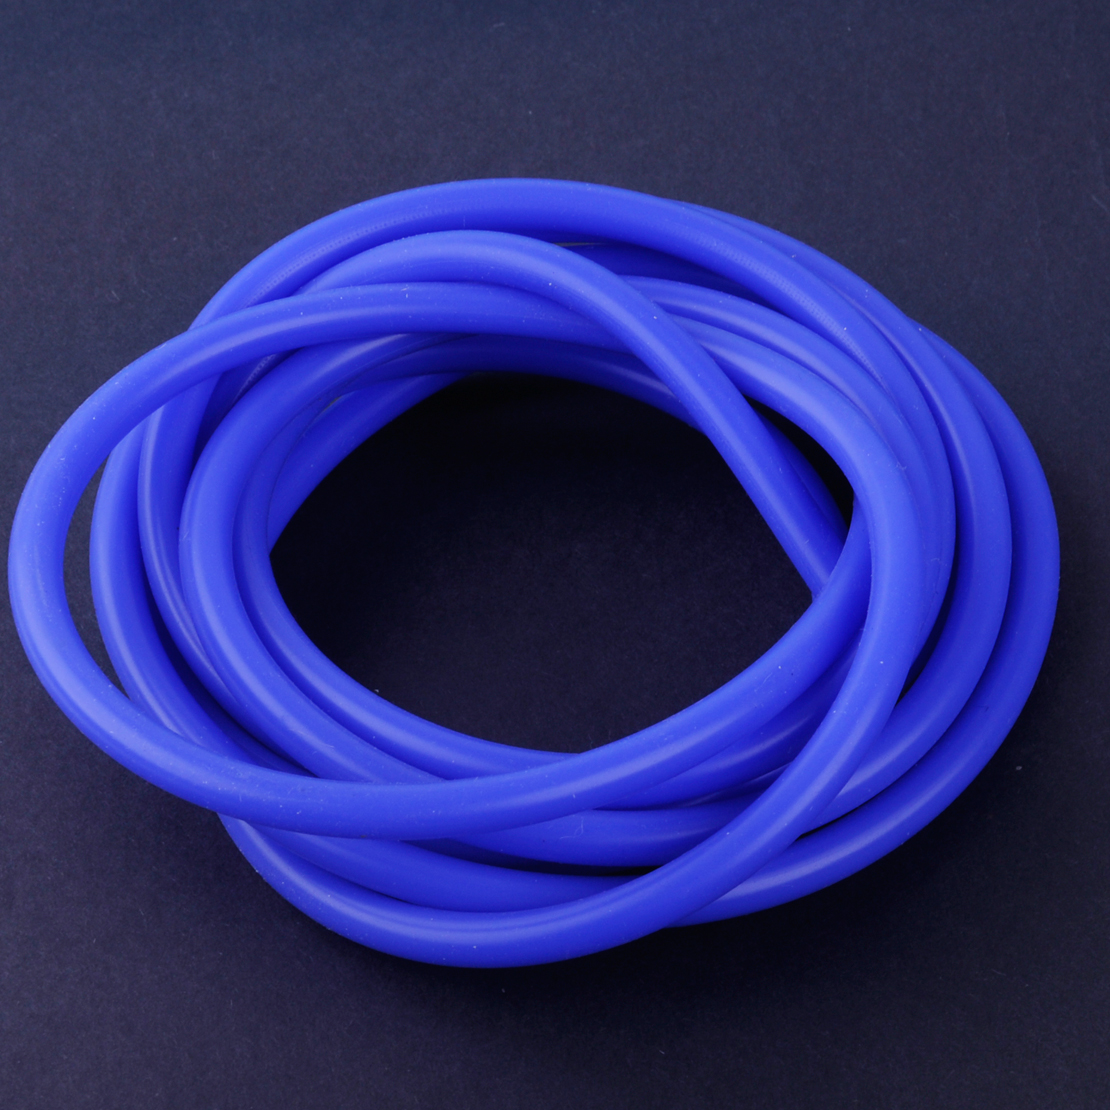 3 Meters Blue Silicone Hose For High Temp Vacuum Engine Bay Dress Up 12Mm for Volkswagen Passat